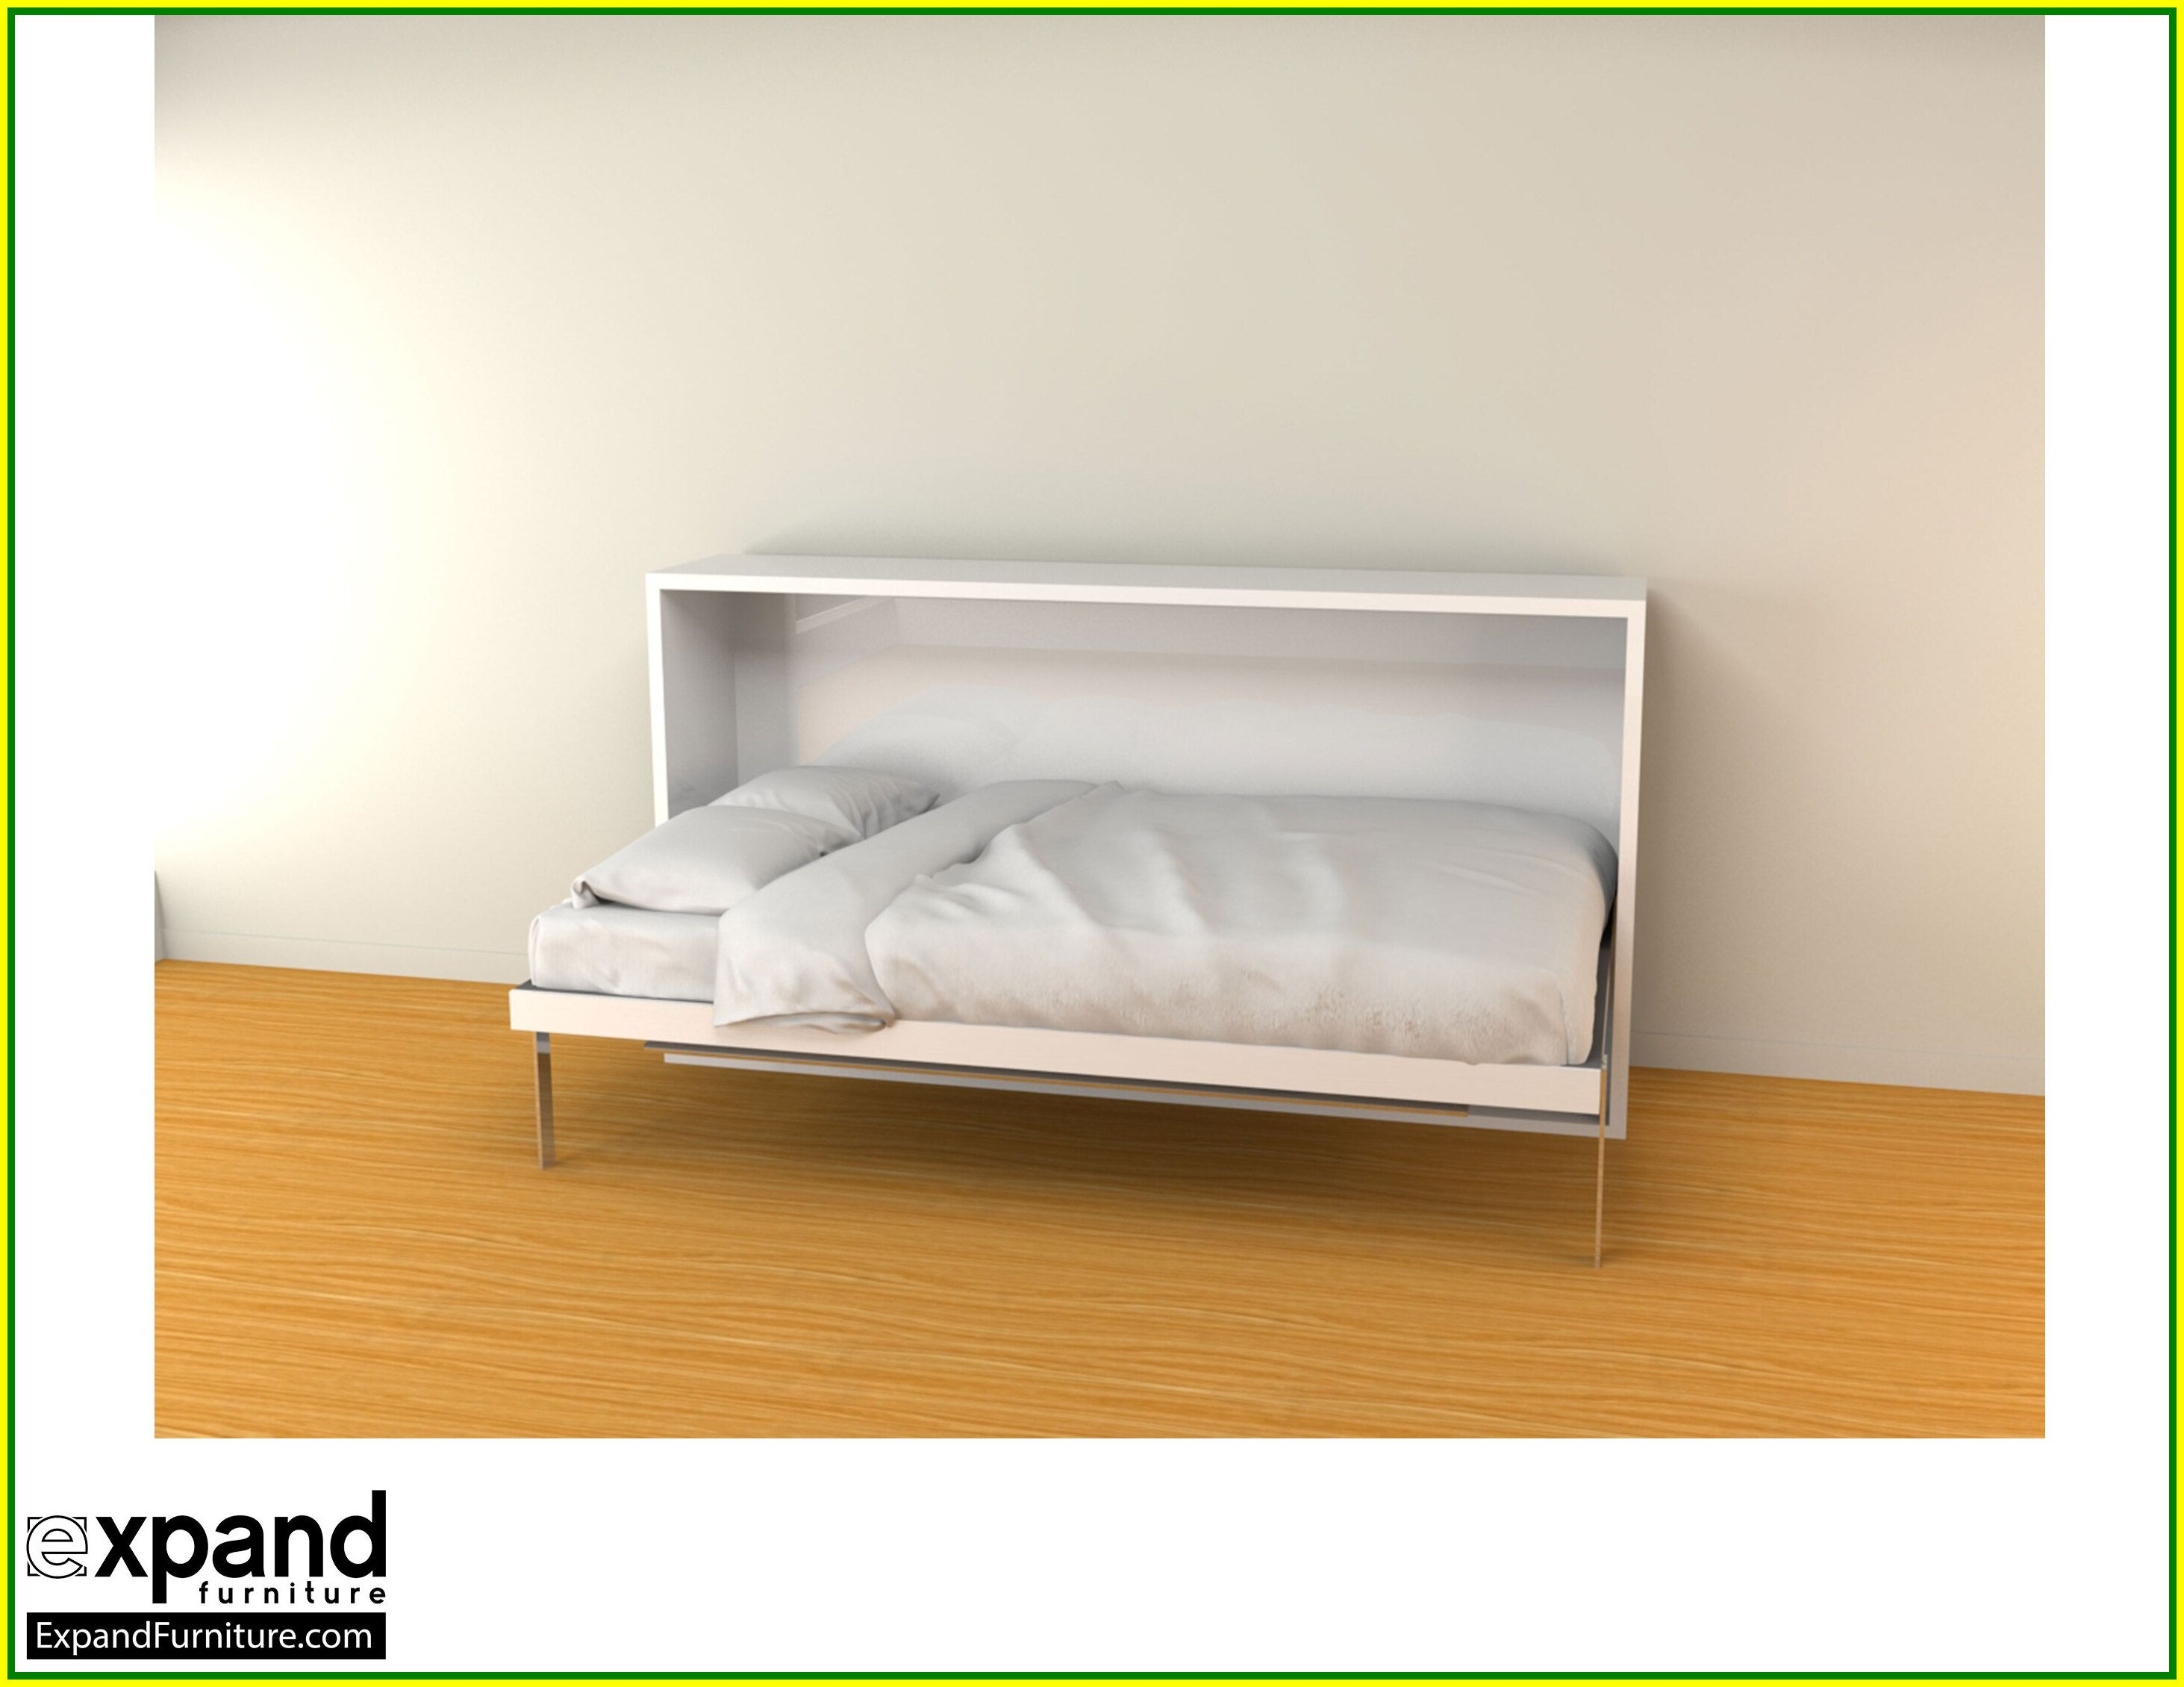 32 reference of wall bed horizontal single in 2020 Wall